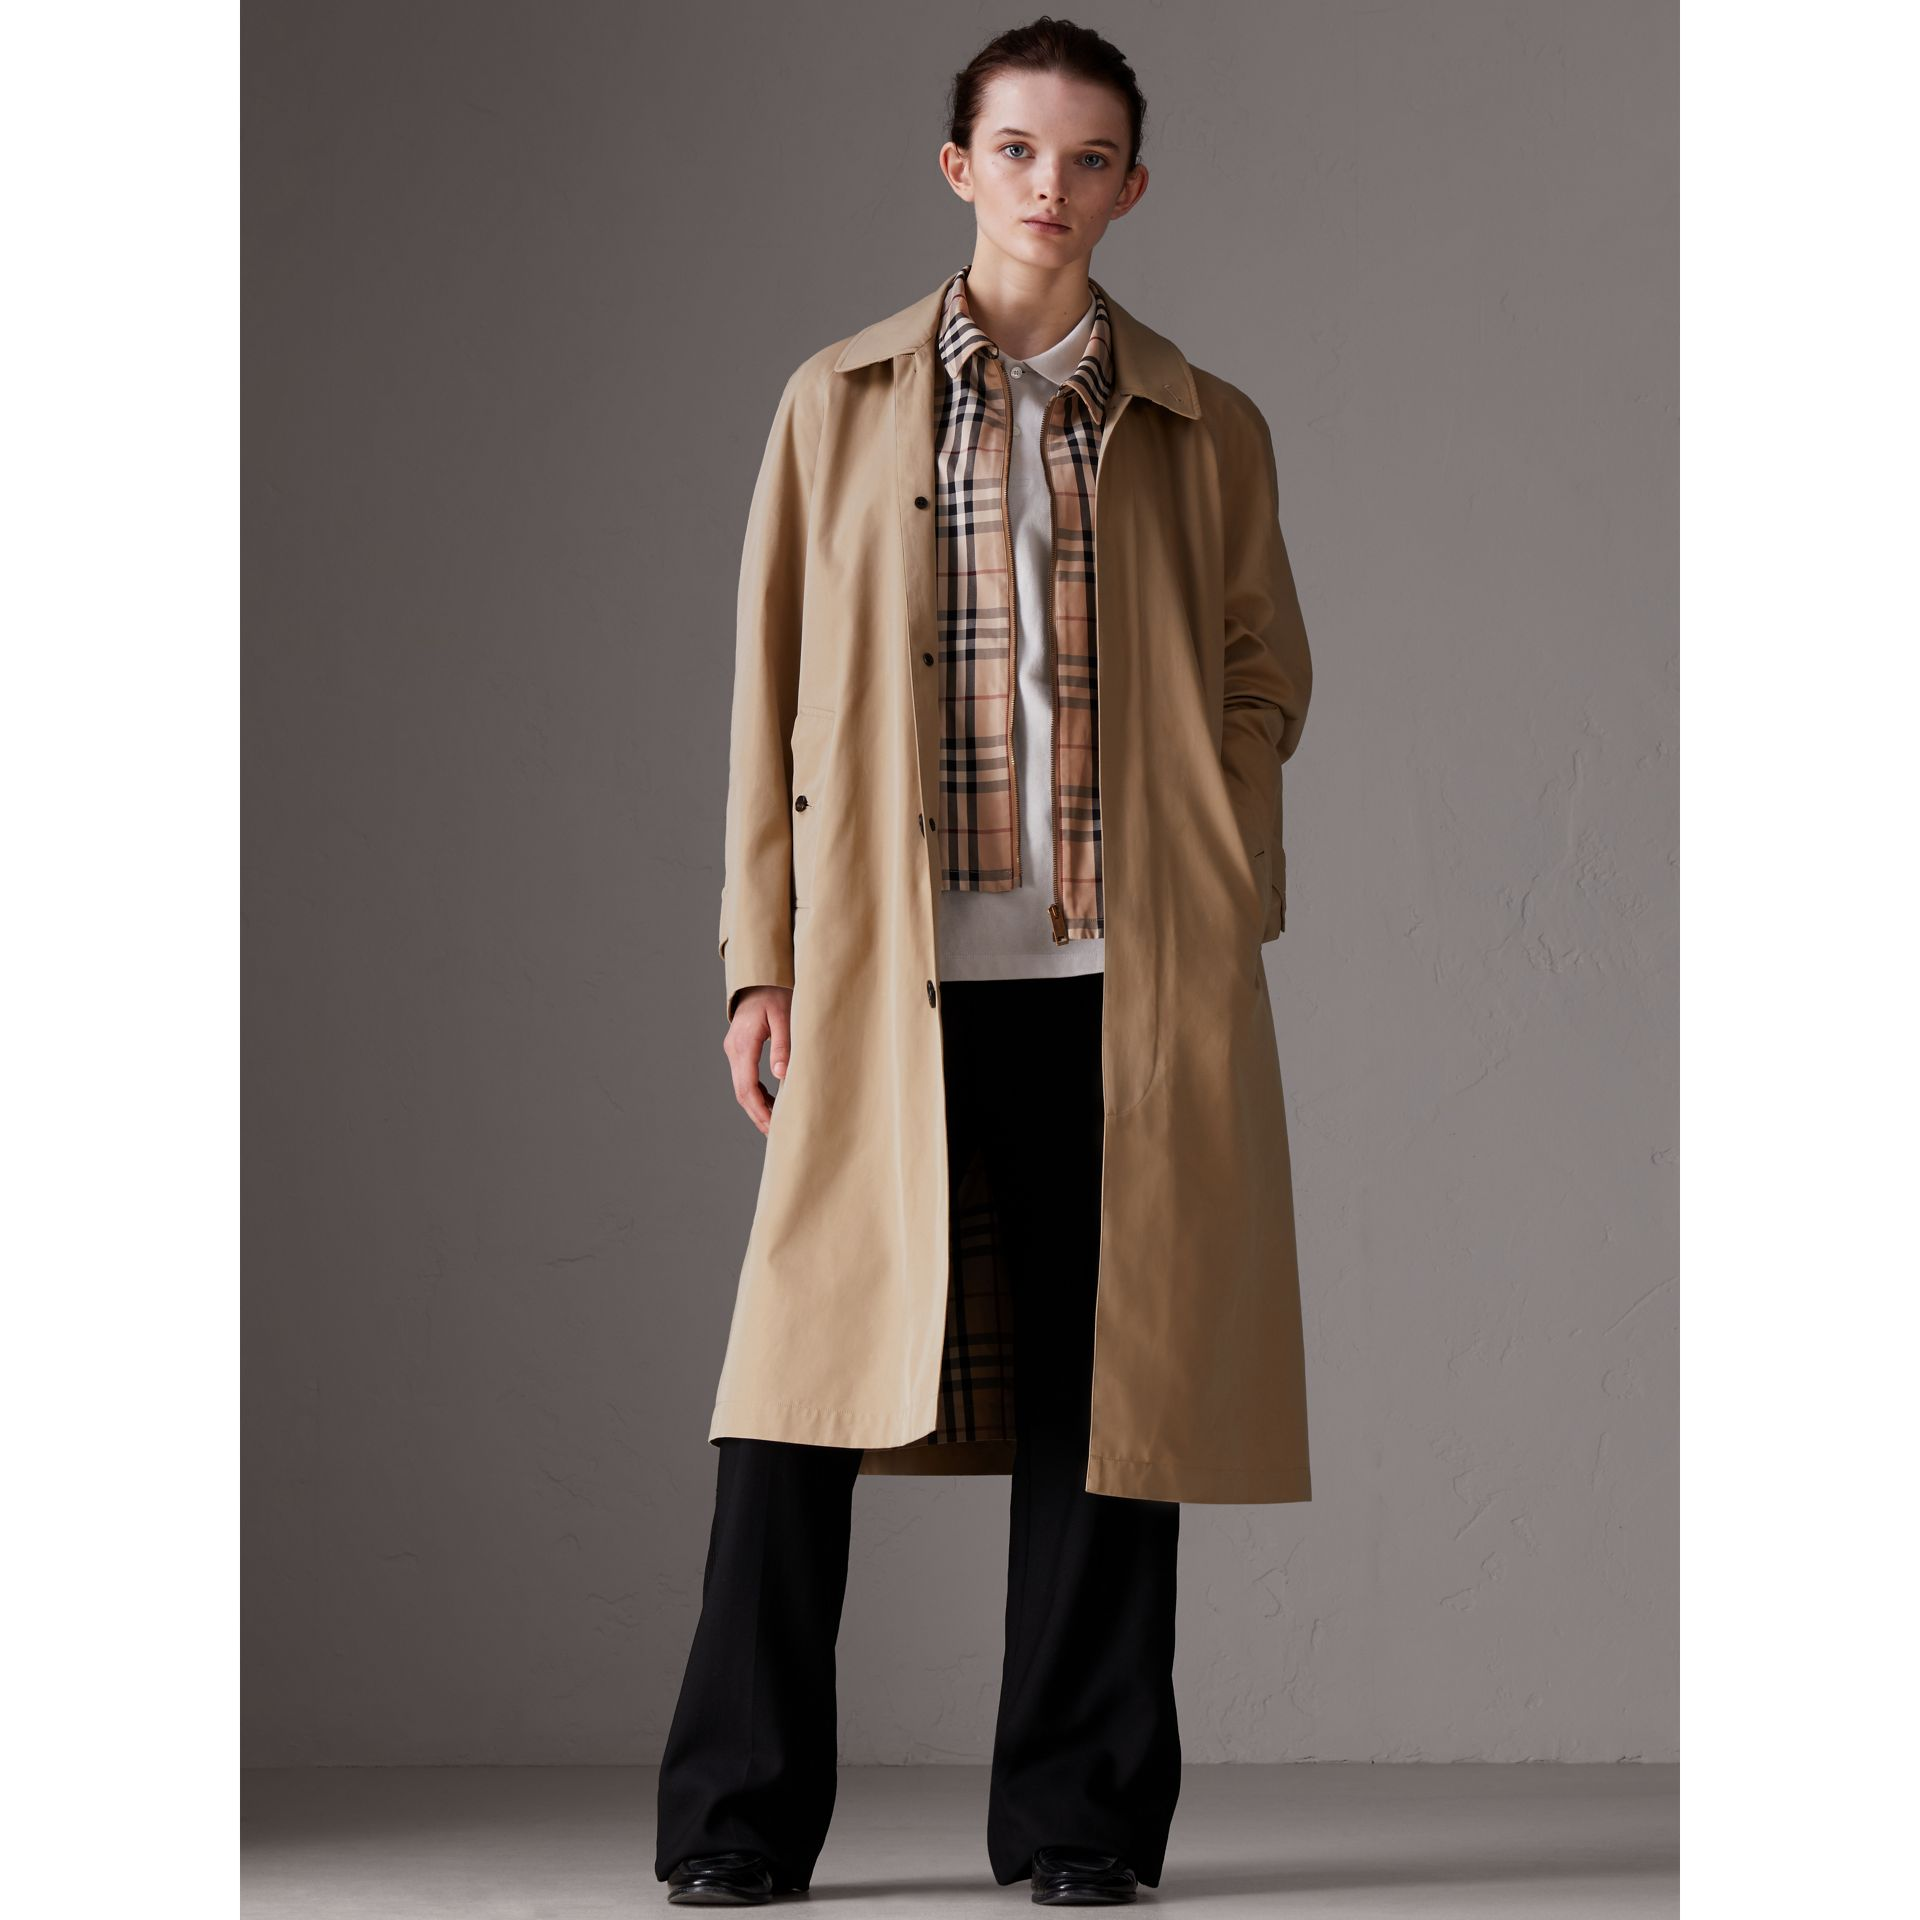 Gosha x Burberry Reconstructed Car Coat in Honey - Men | Burberry - gallery image 3